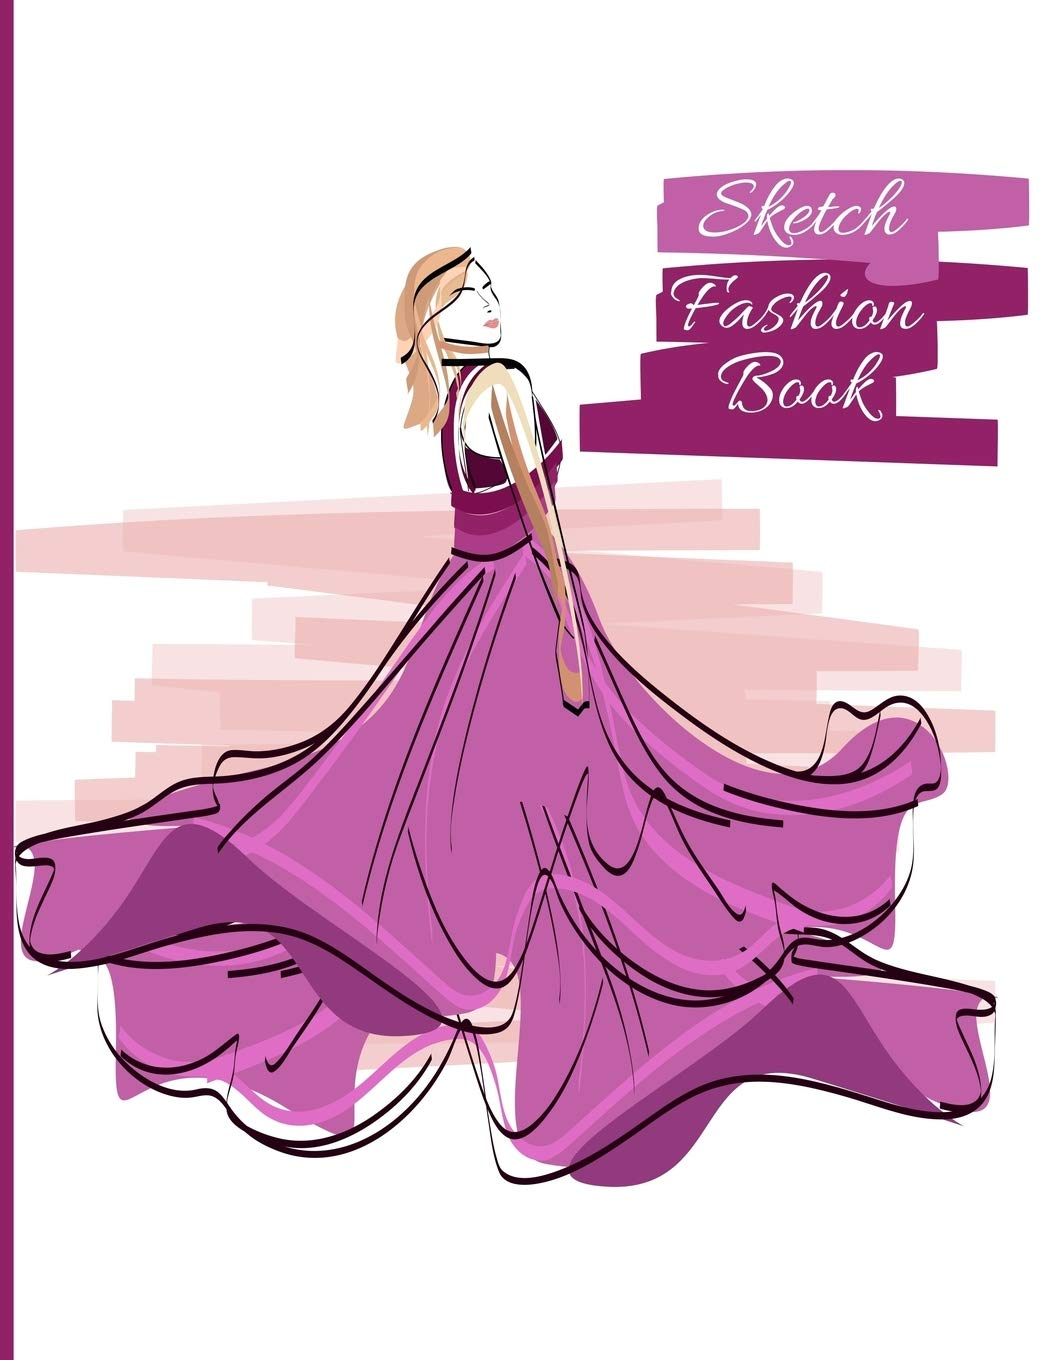 Sketch Fashion Book Blank Human Figure Design Templates For Designing Organizing Looks And Building Portfolios Easy Sketch Collection Personalized Artist Notebook Designs Dazenmonk 9781099805813 Amazon Com Books